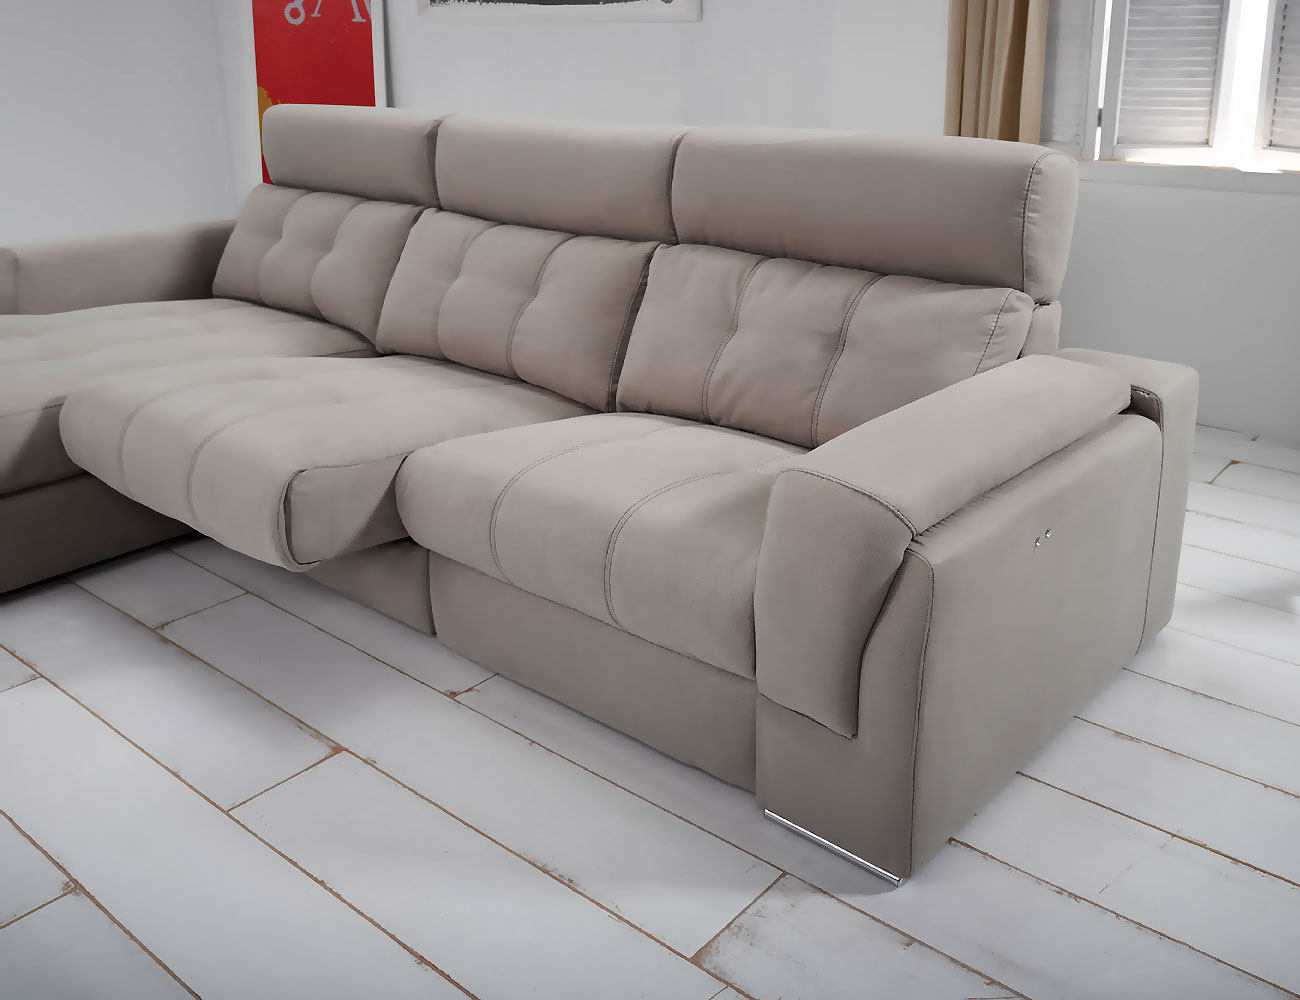 Sofa chaiselongue piel con arcon relax electrico 3